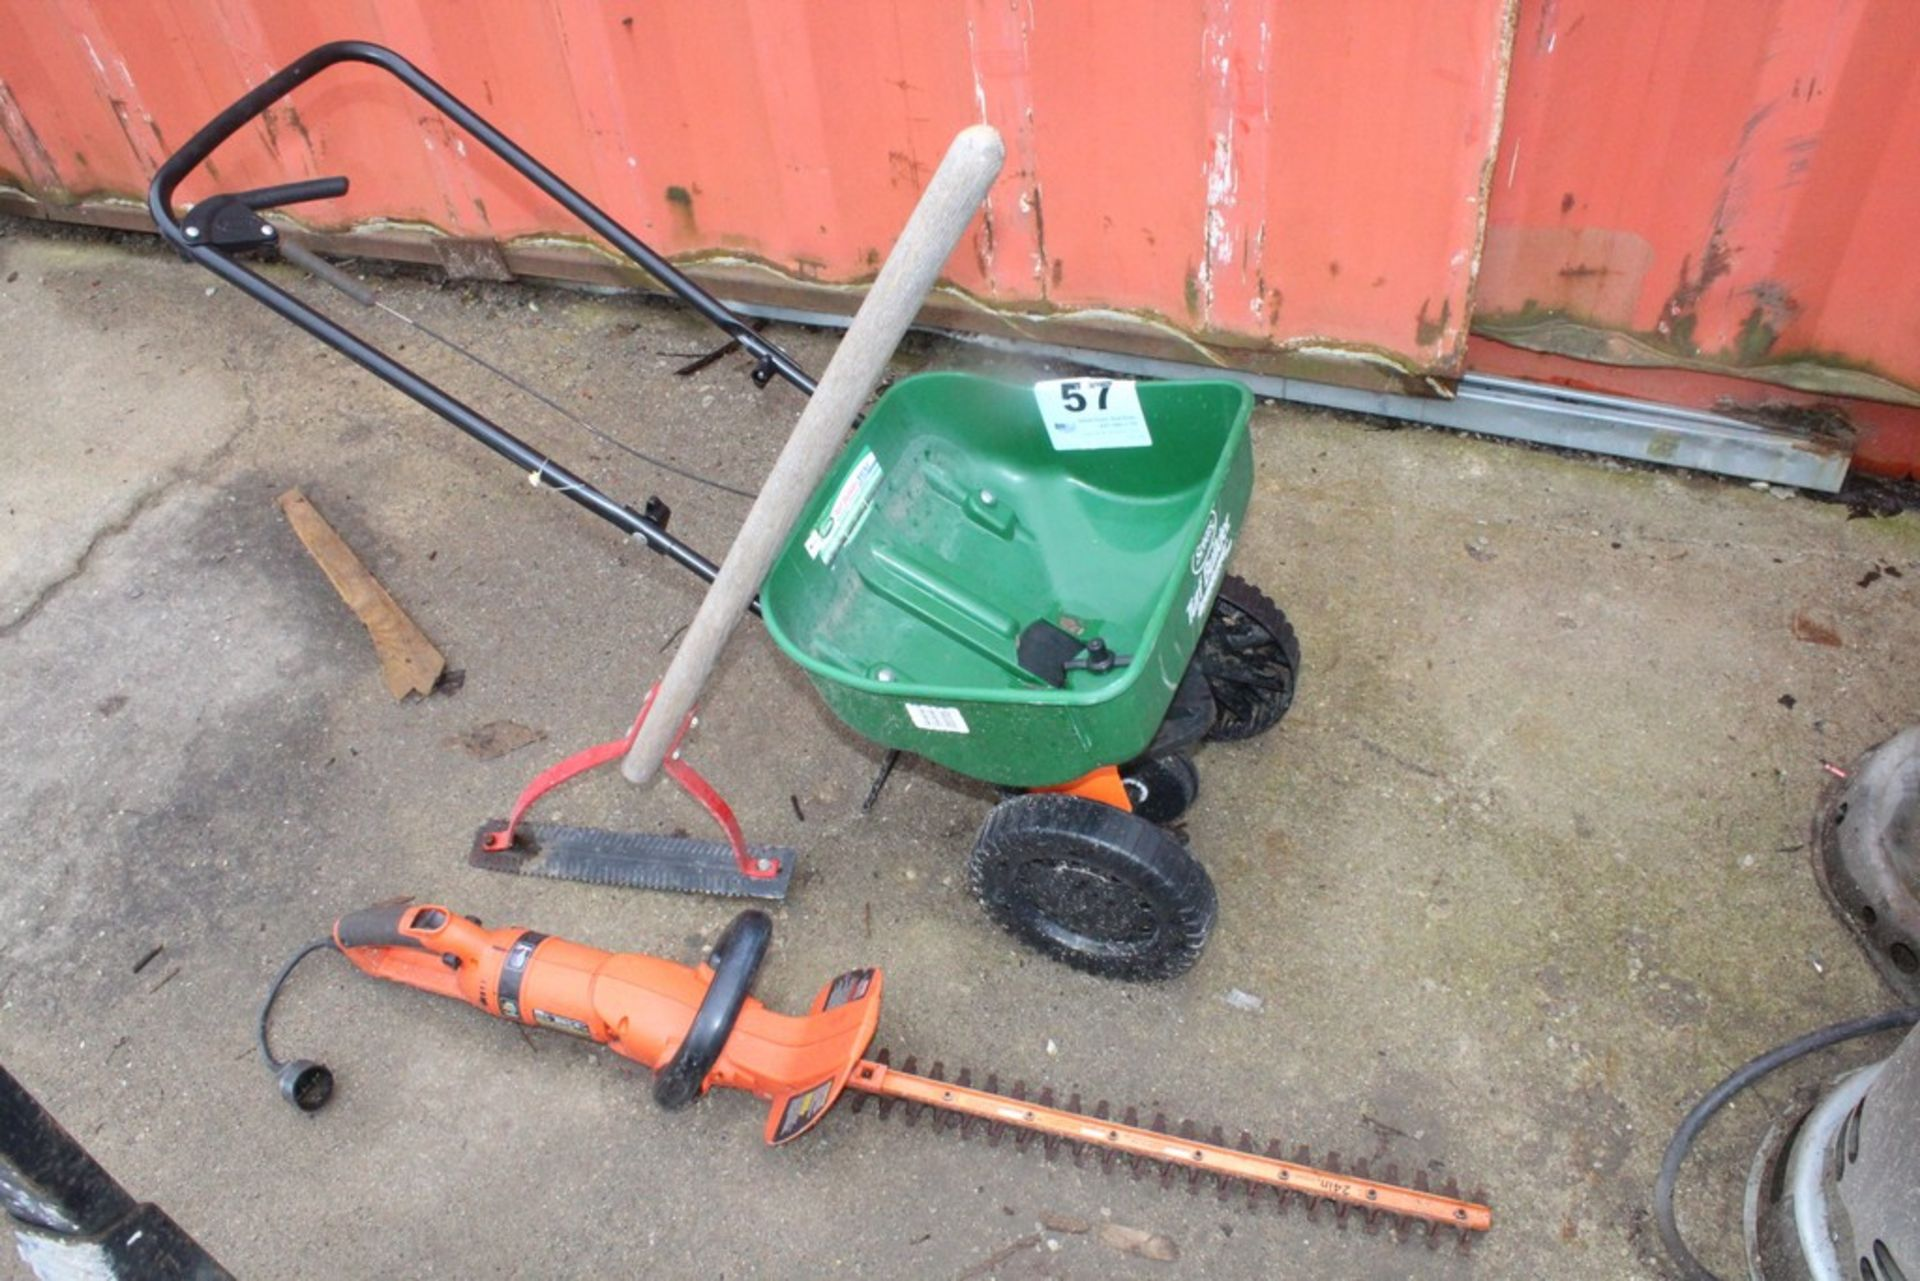 Lot 57 - SCOTTS SPREADER, BLACK & DECKER HEADGE TRIMMER, AND WEED CUTTER